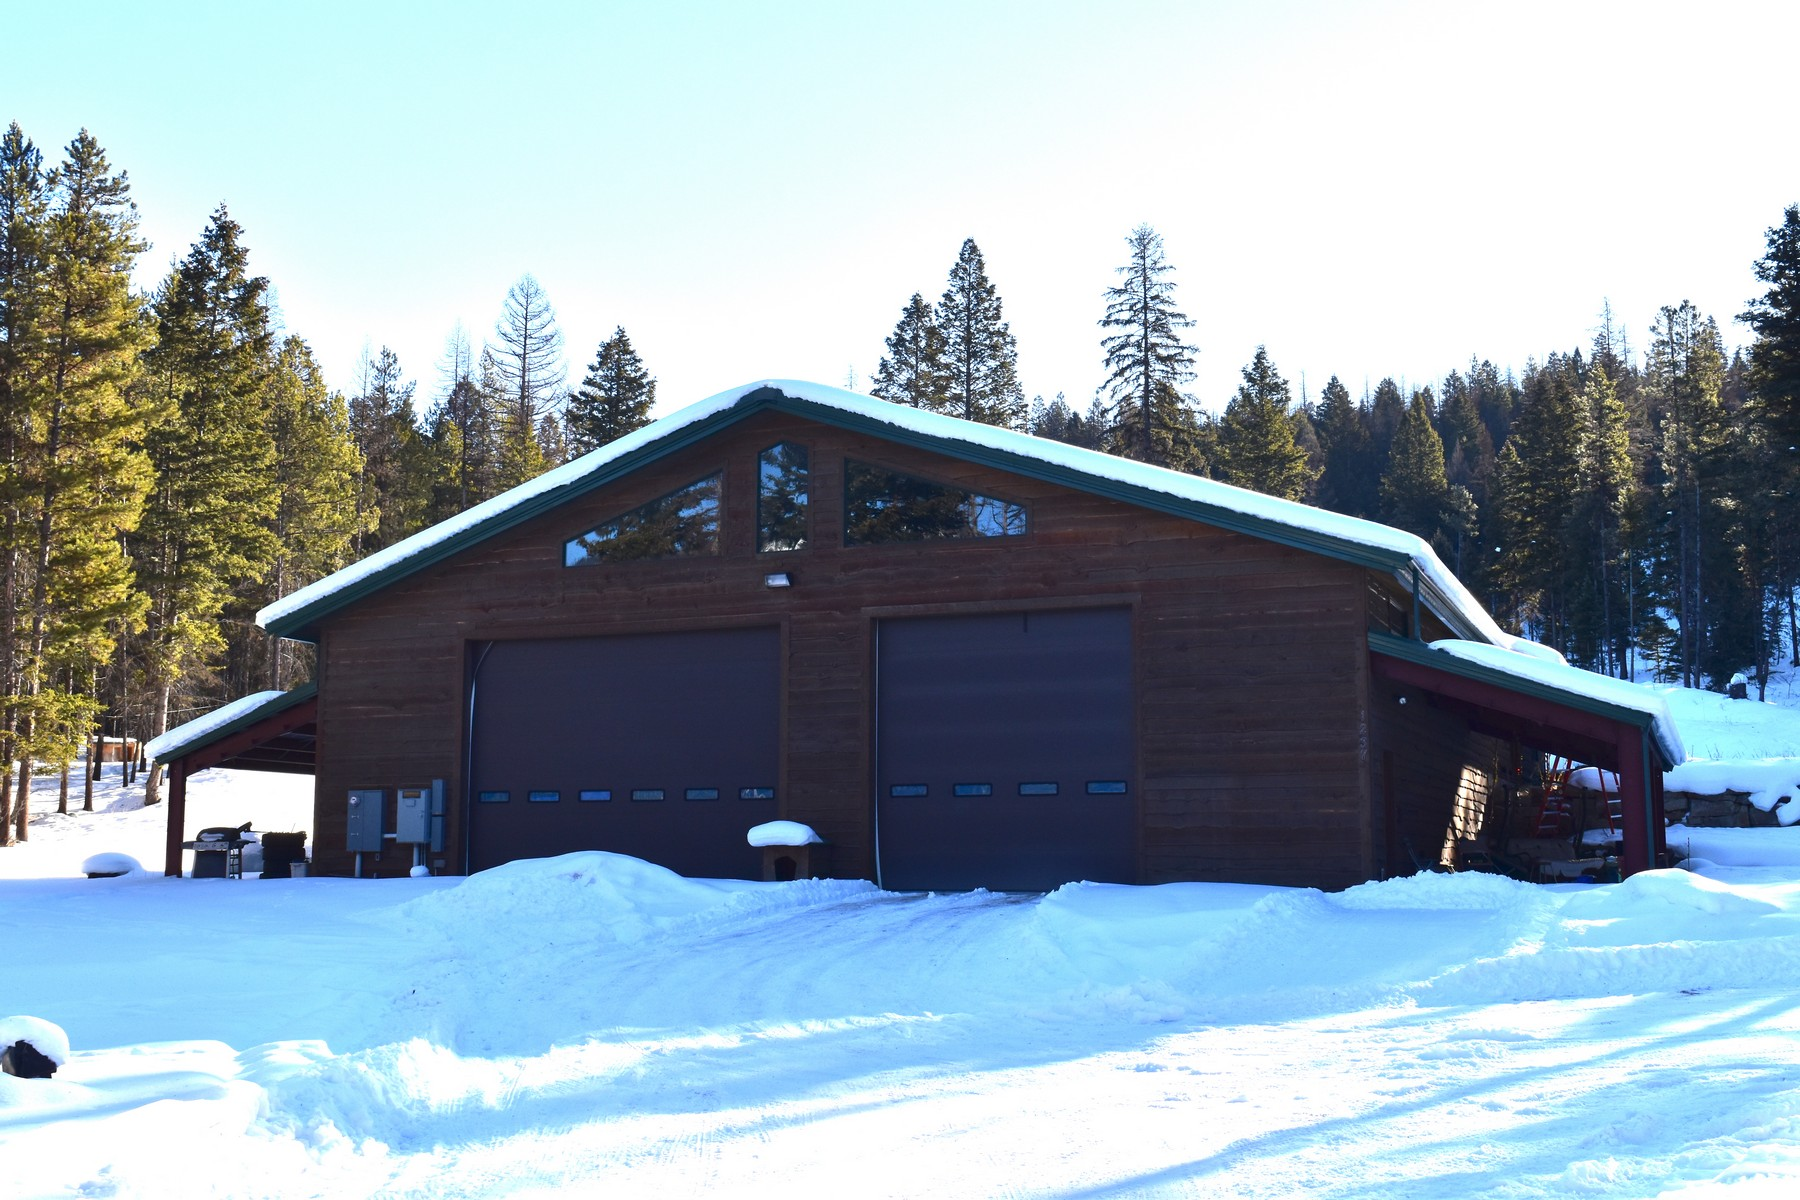 Single Family Home for Sale at 1237 Indian Creek Trl , Kila, MT 59920 1237 Indian Creek Trl Kila, Montana, 59920 United States